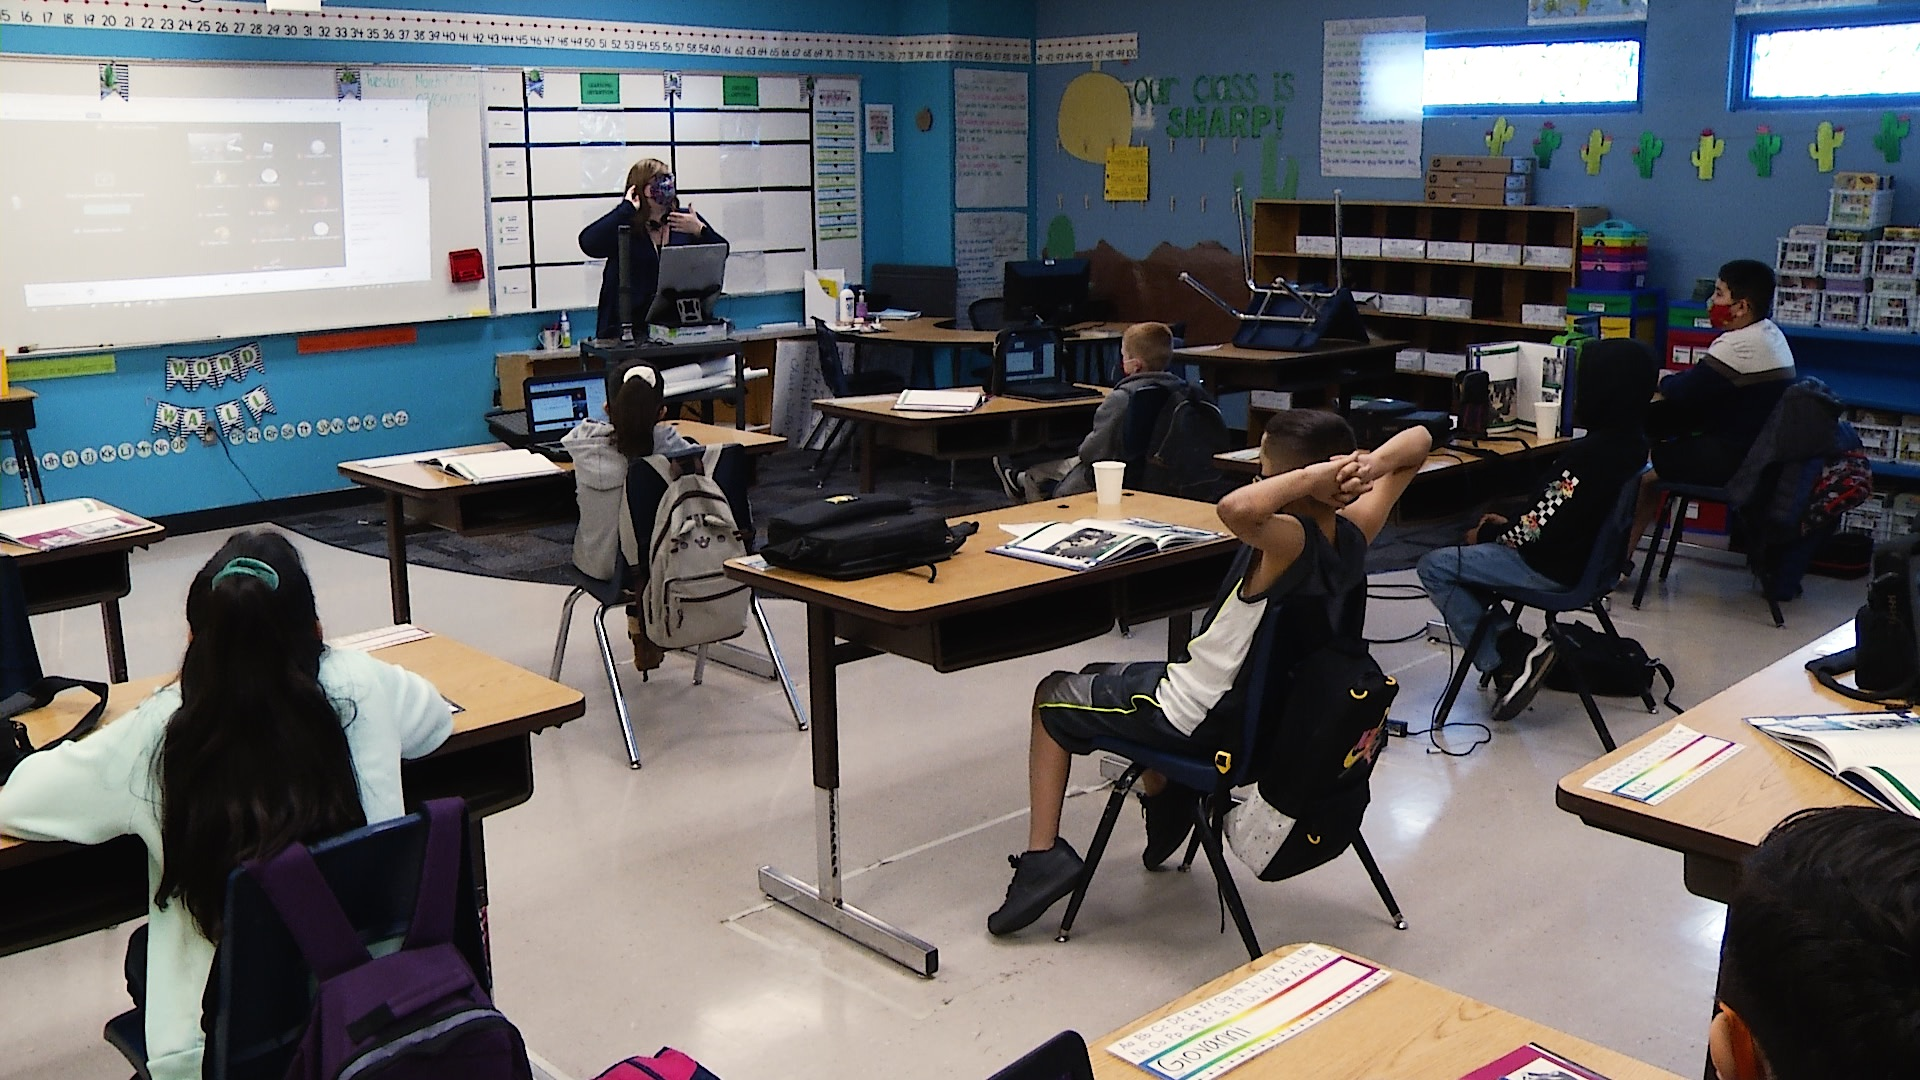 A classroom in the Sunnyside Unified School District.